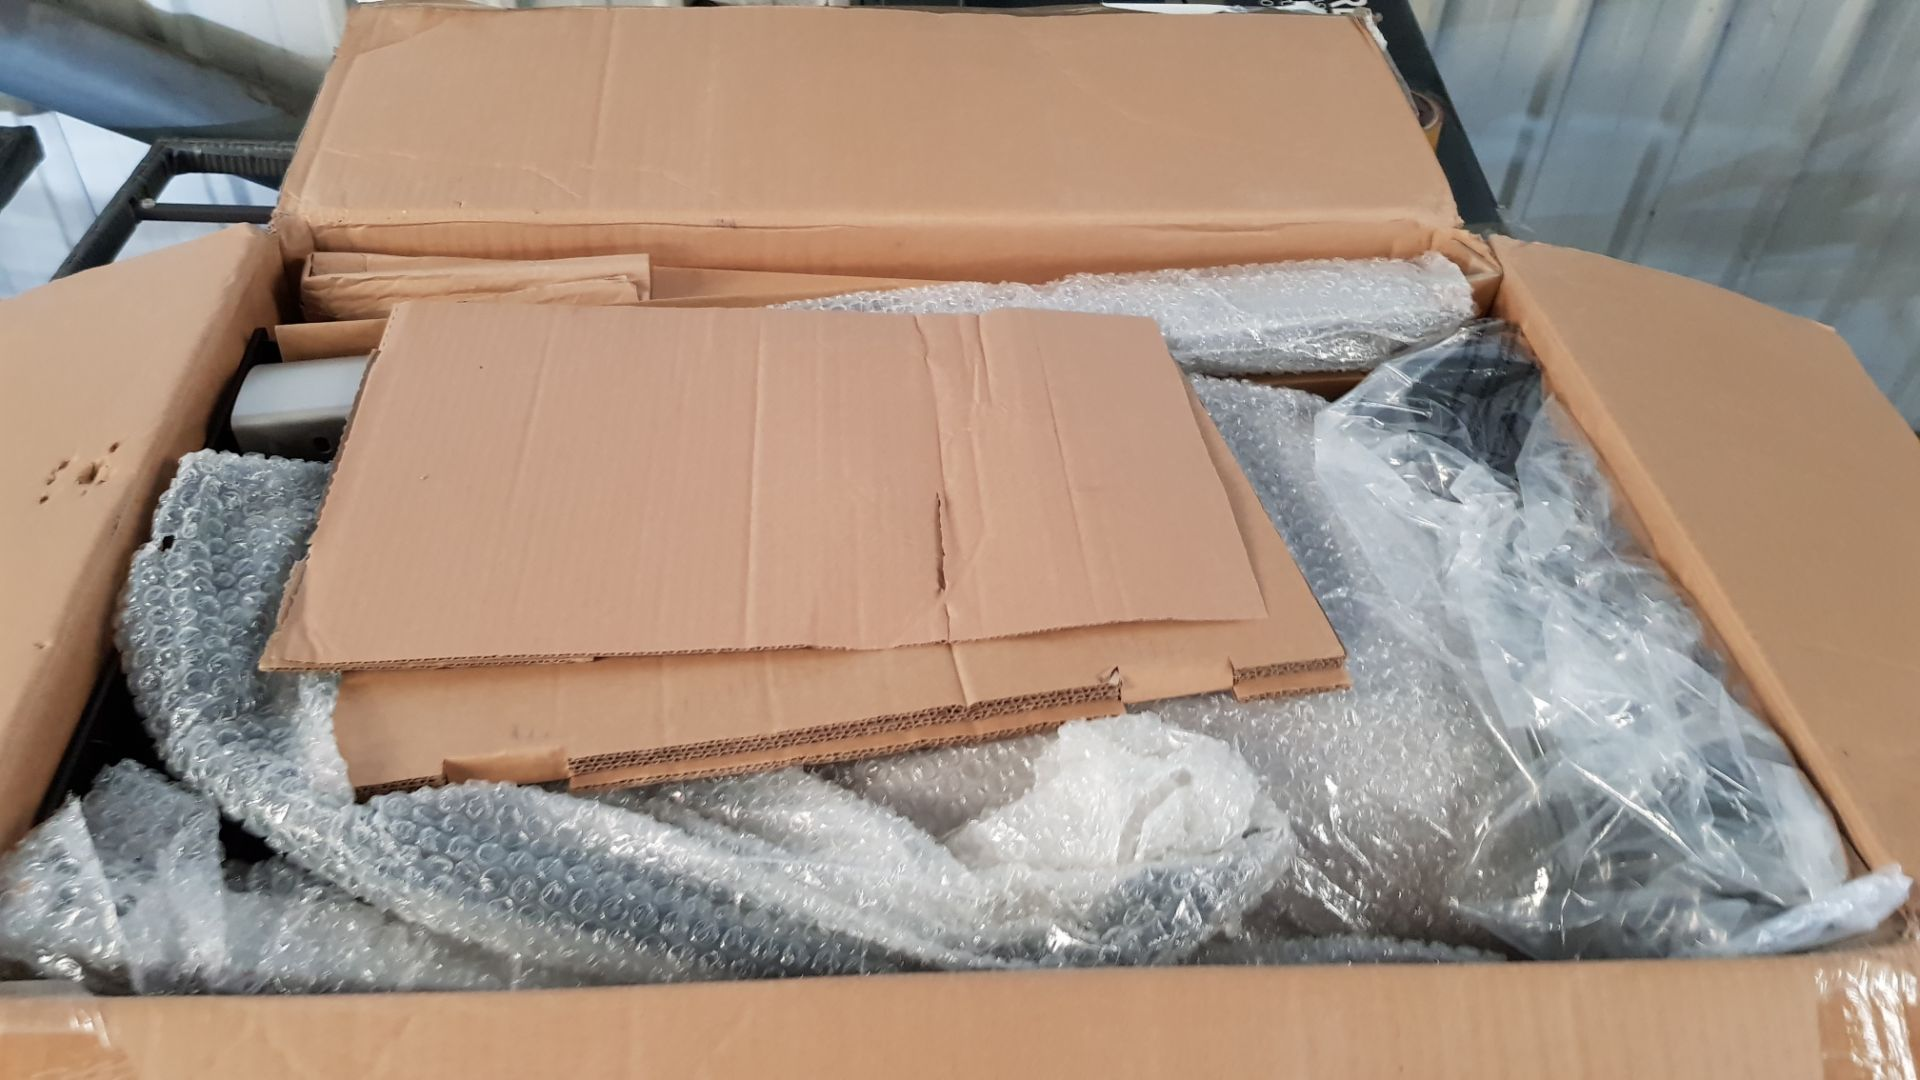 (P8) 1x Outback Excel 310 Gas BBQ Silver RRP £100. Contents Appear As New, In Original Packaging. C - Image 4 of 5